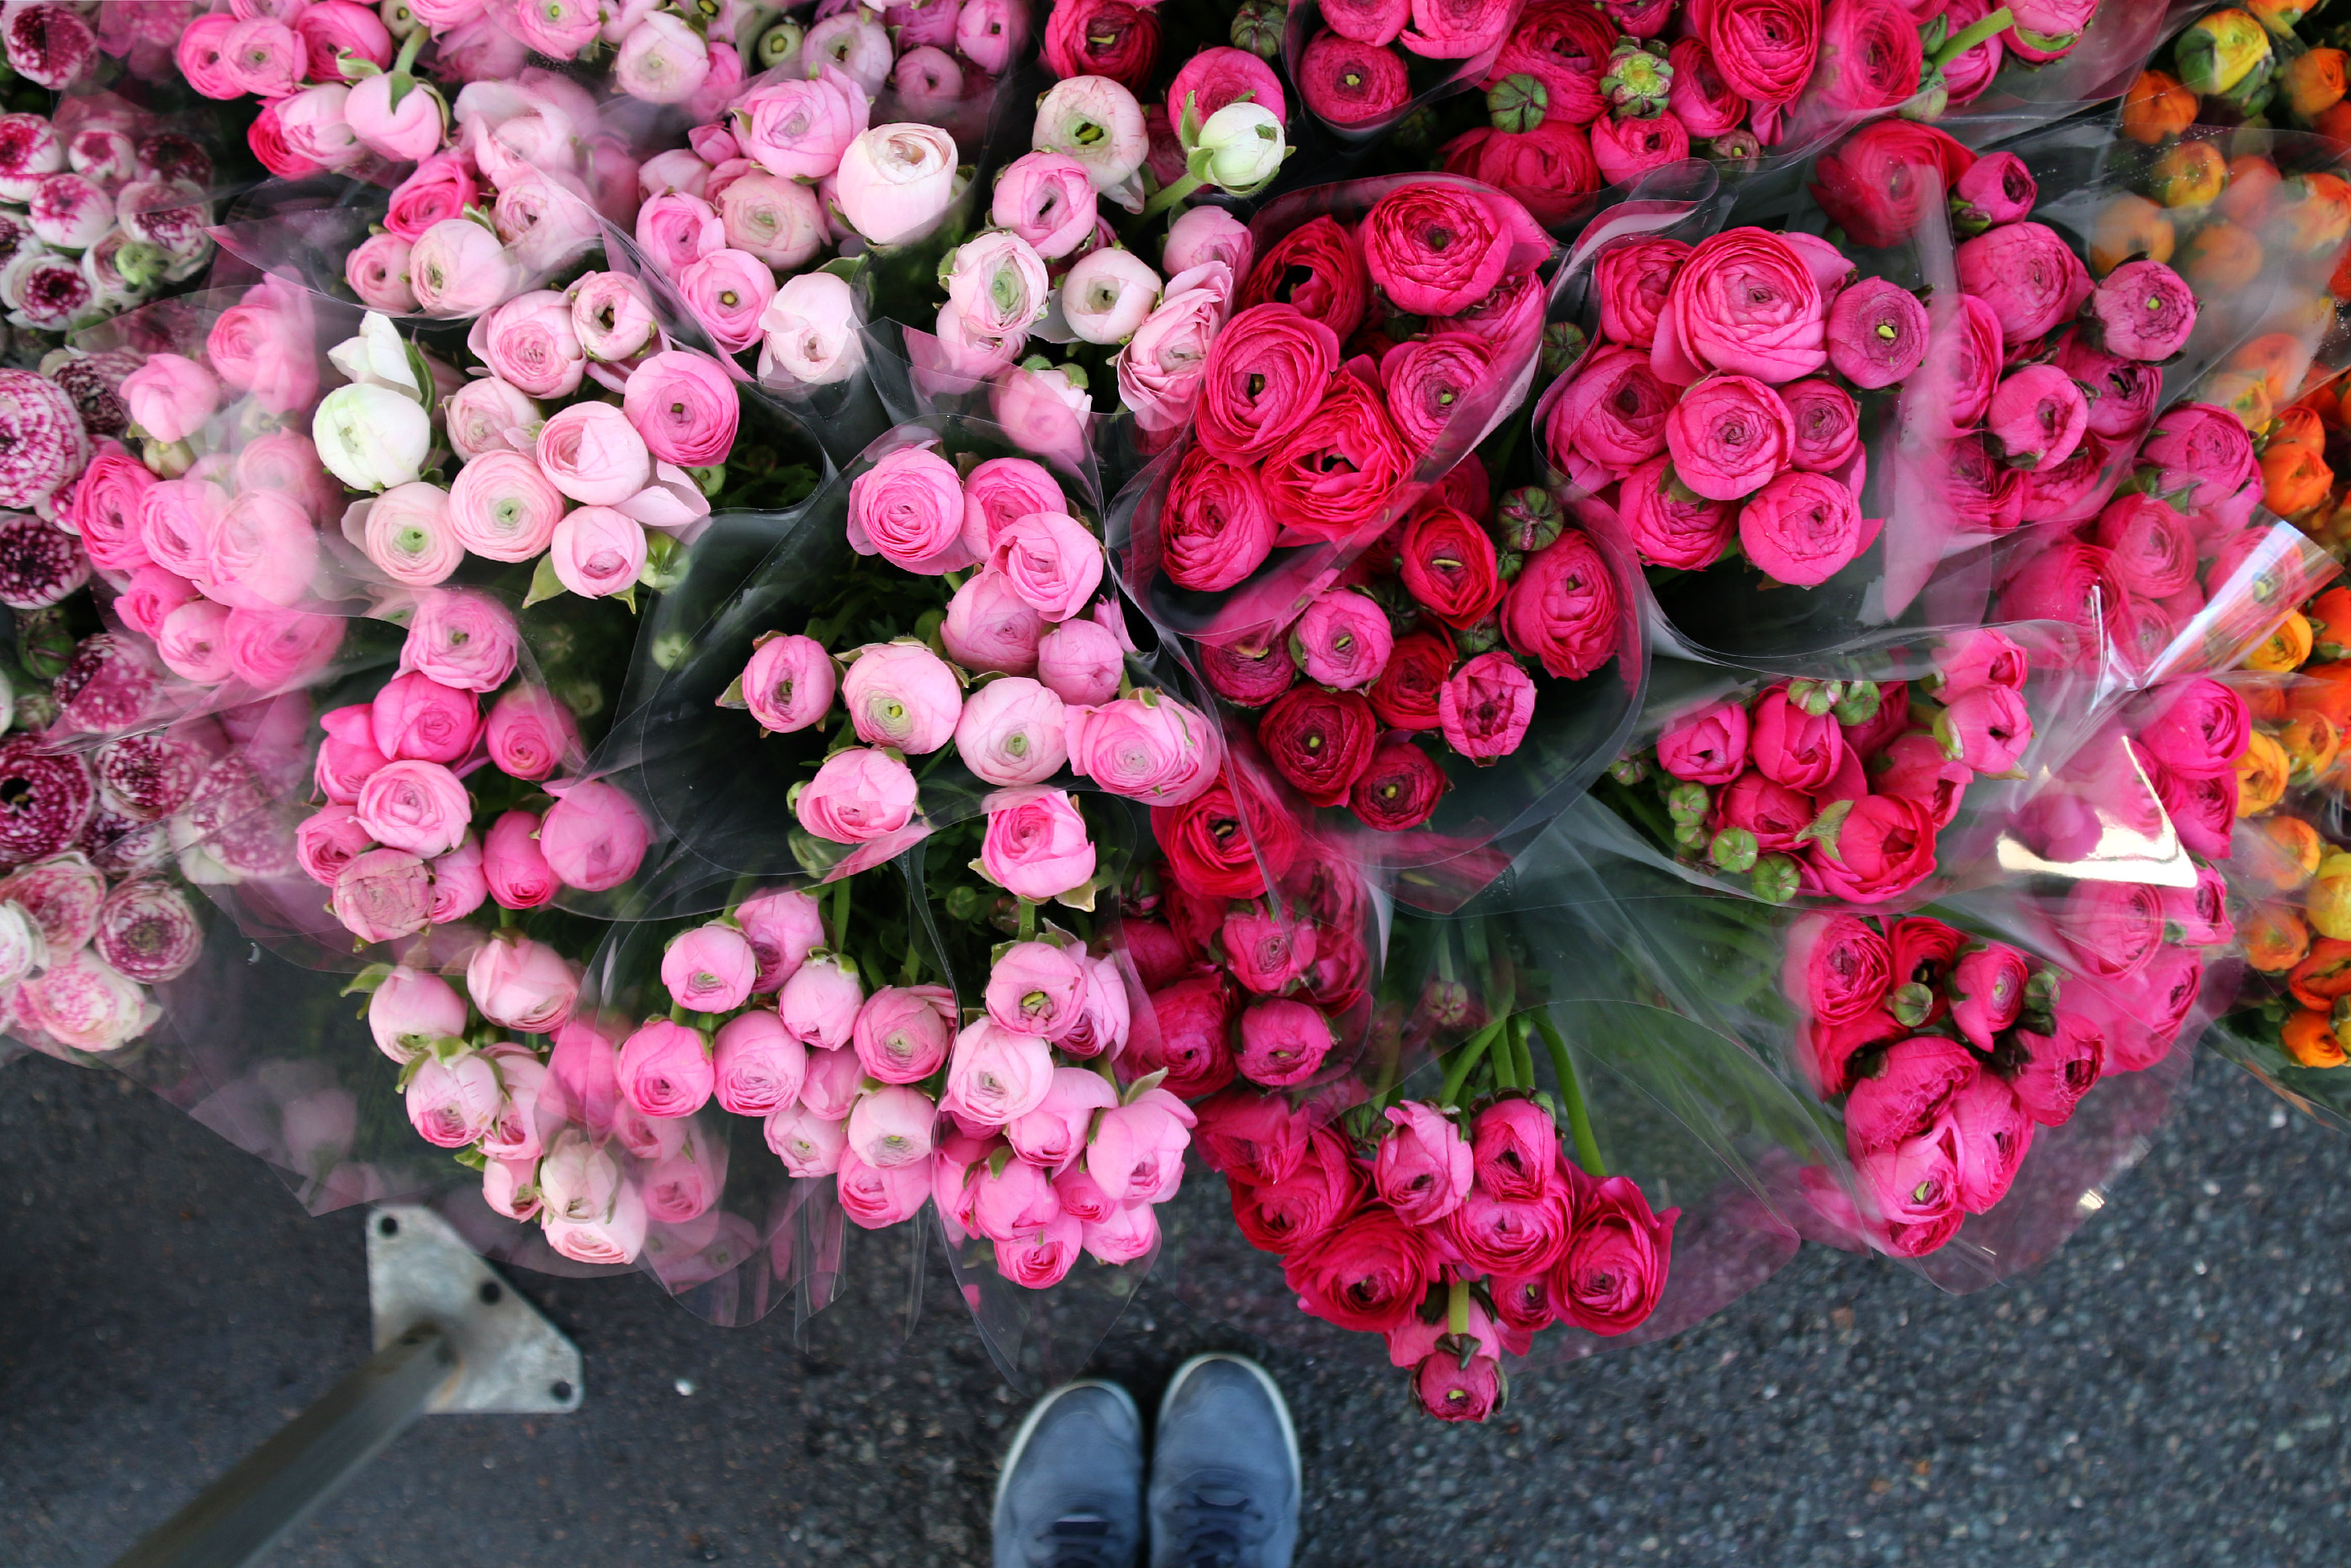 Columbia Road Flower Market London ranunculus